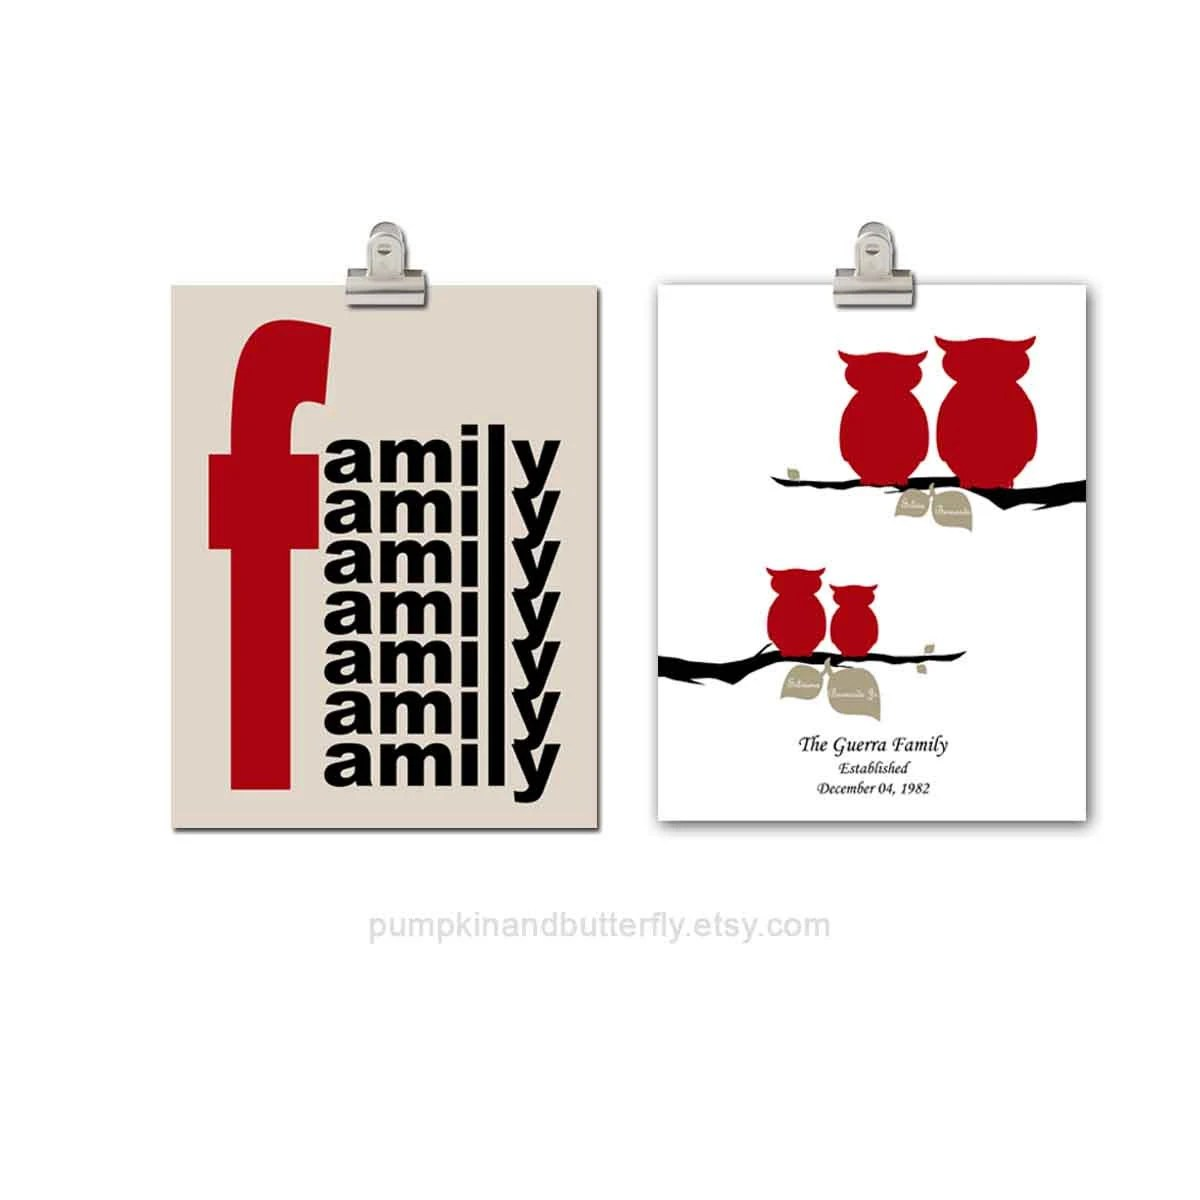 Family Tree Print, Home Sweet Home, Housewarming Gift, Set of Two 11x14 Print, Red, Black, White,  Love, Unisex - pumpkinandbutterfly